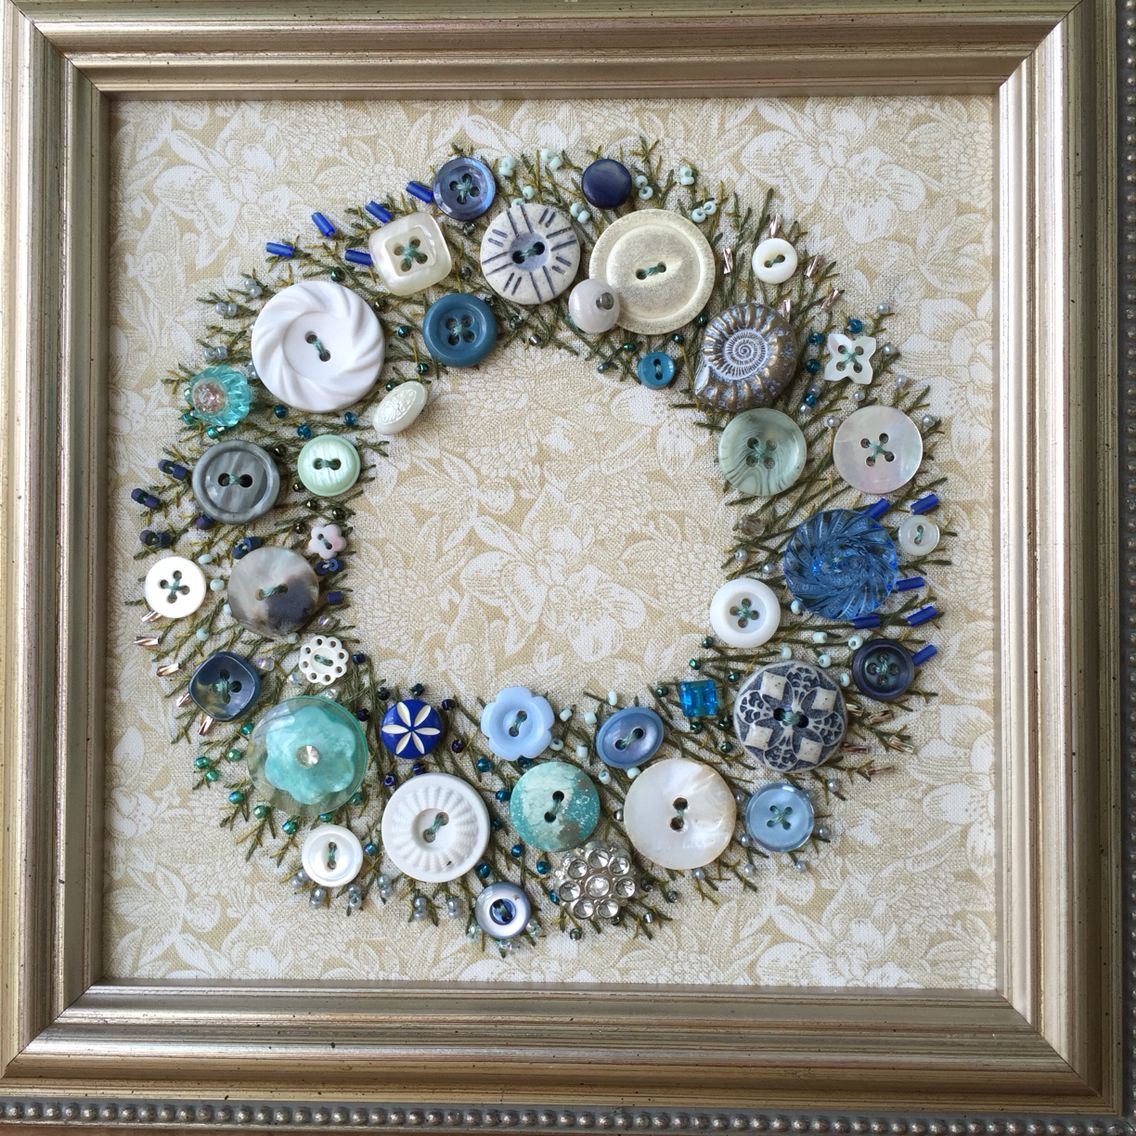 I just finished this antique button wreath for sale on for Craft wreaths for sale